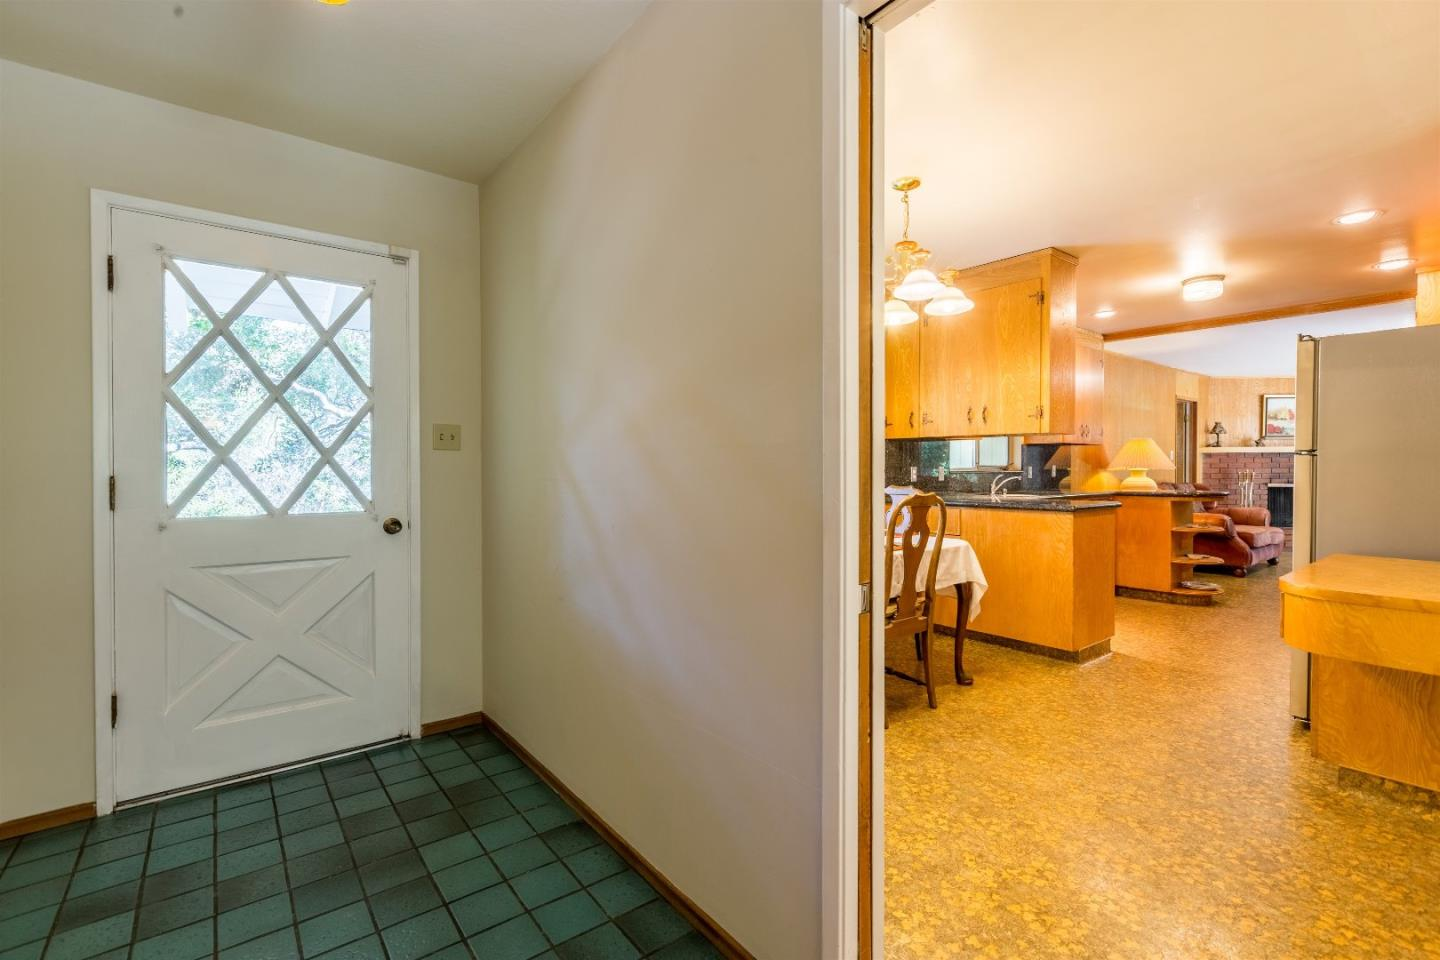 Additional photo for property listing at 115 Old Adobe Road  Los Gatos, California 95032 United States